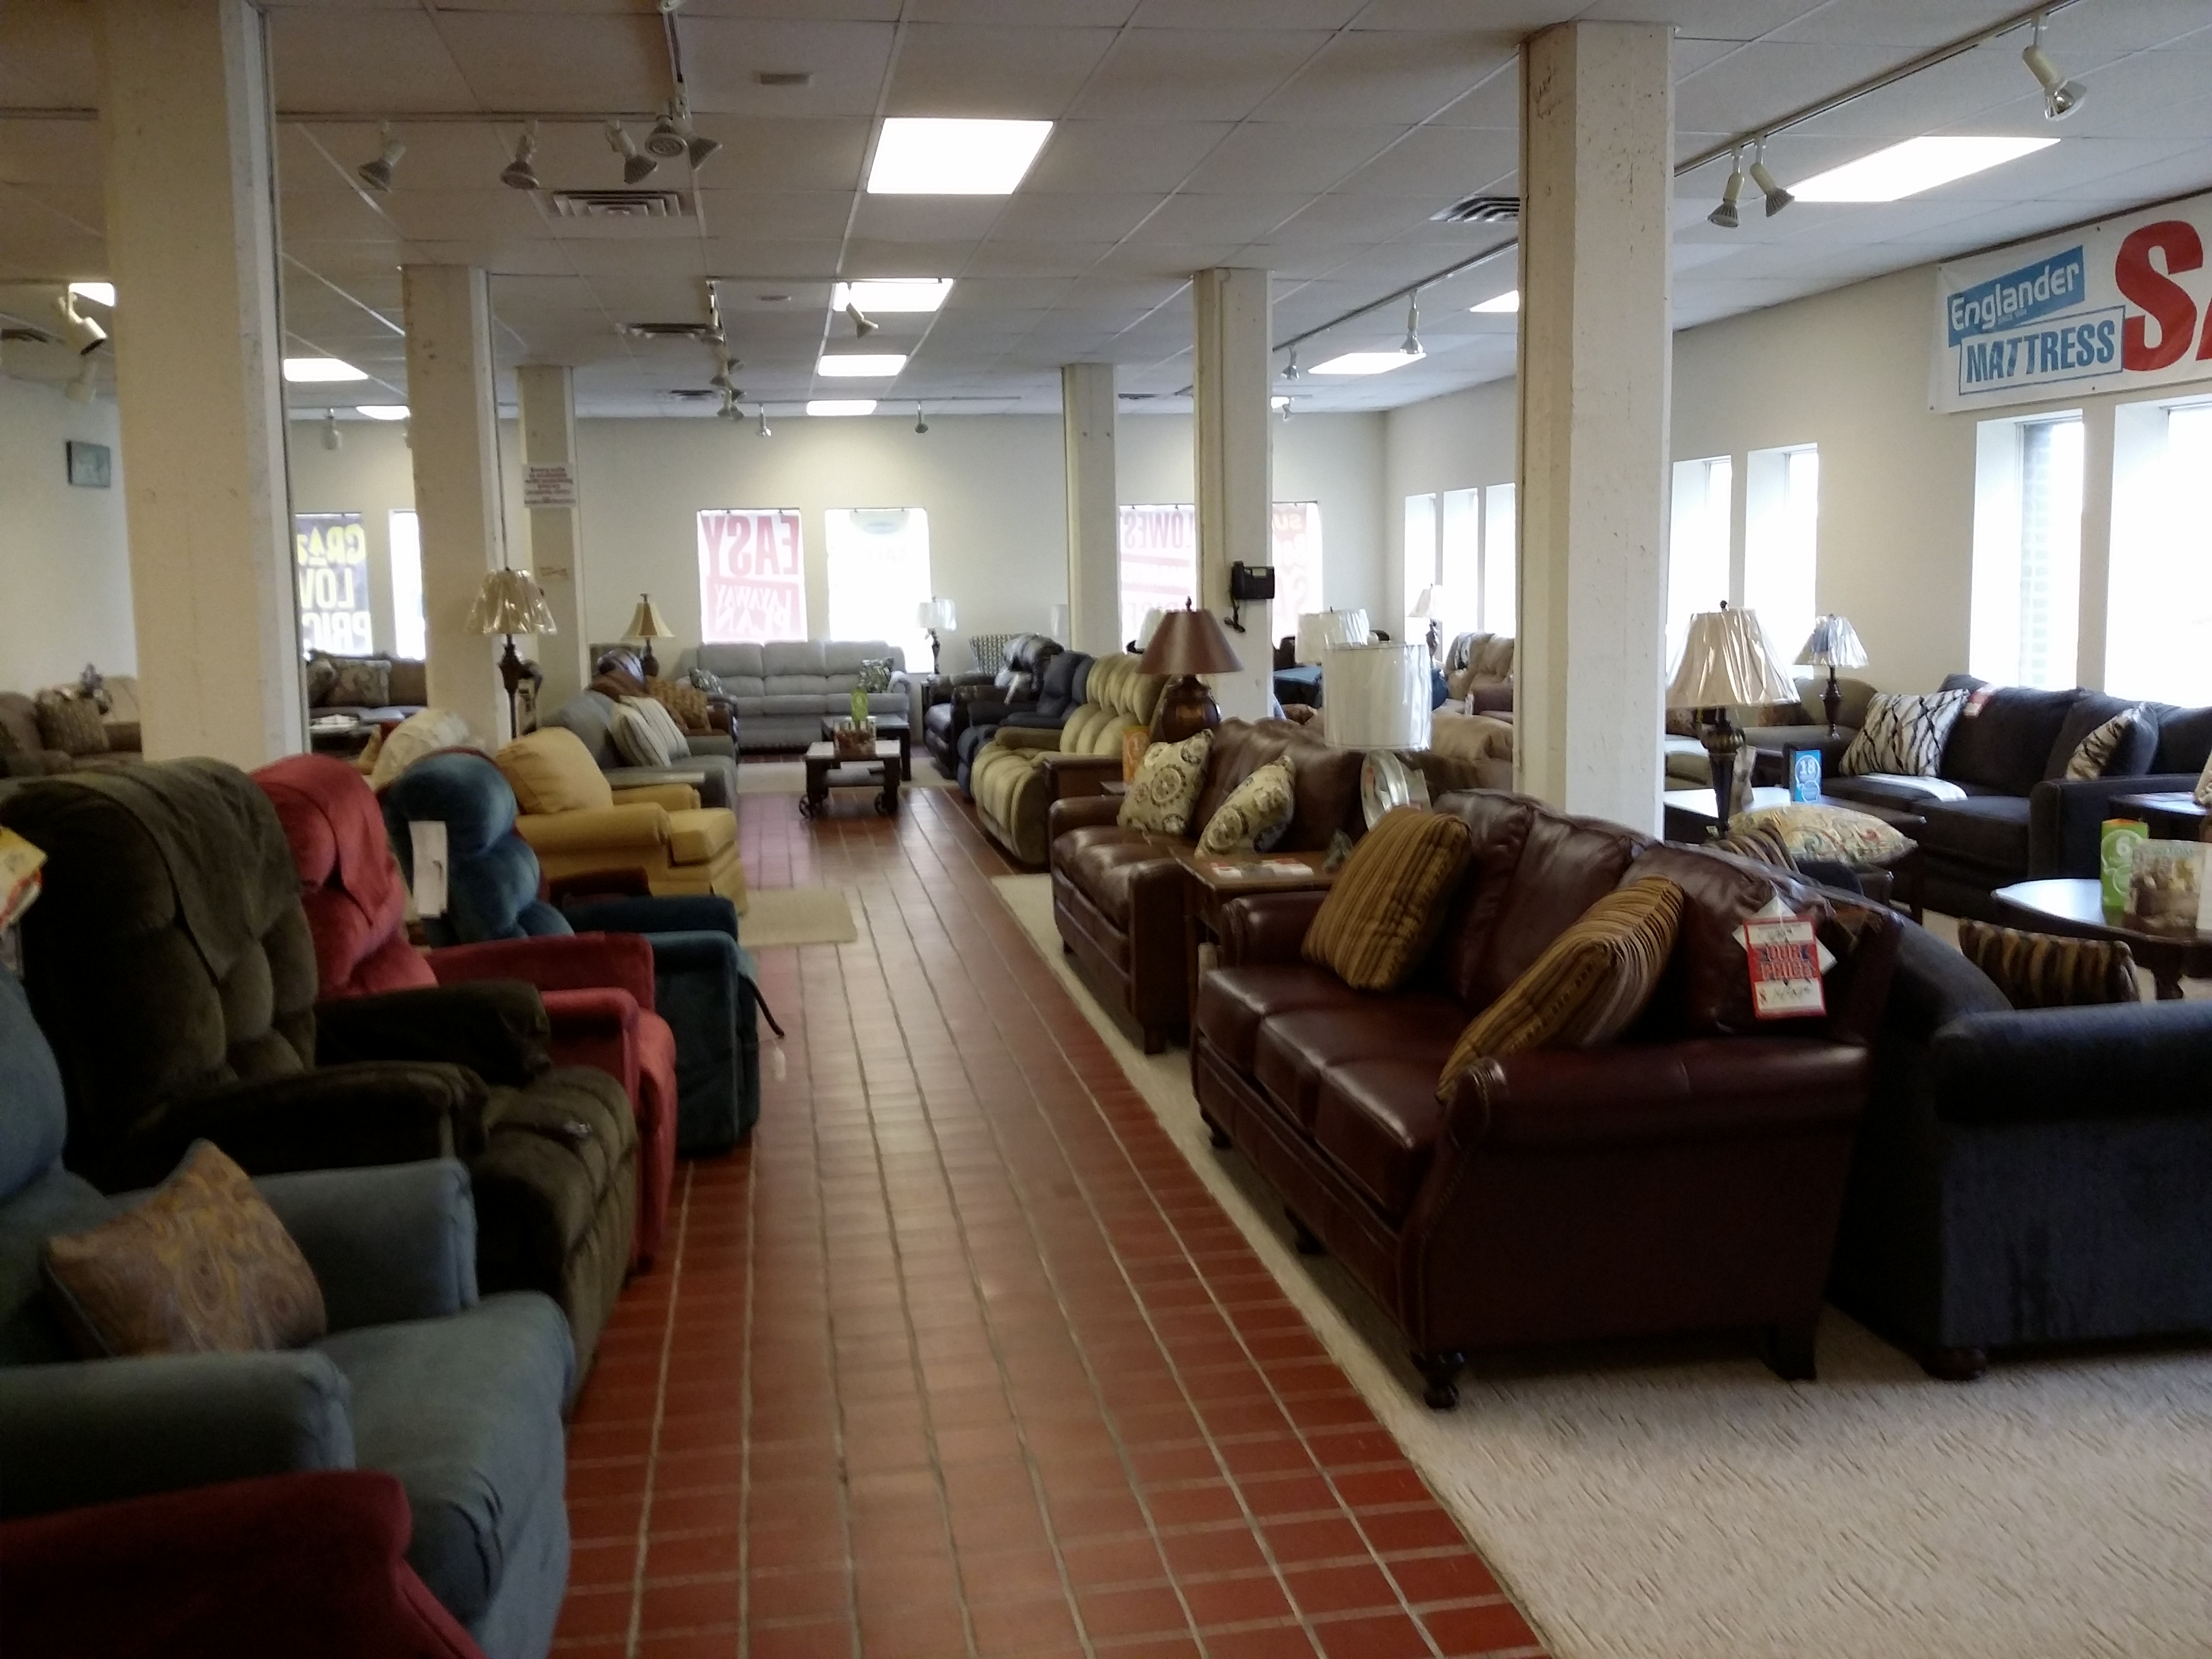 Furniture Store, Kitchen Sets, Bedroom Furniture, Recliners: Quad Cities,  Rock Island, IL